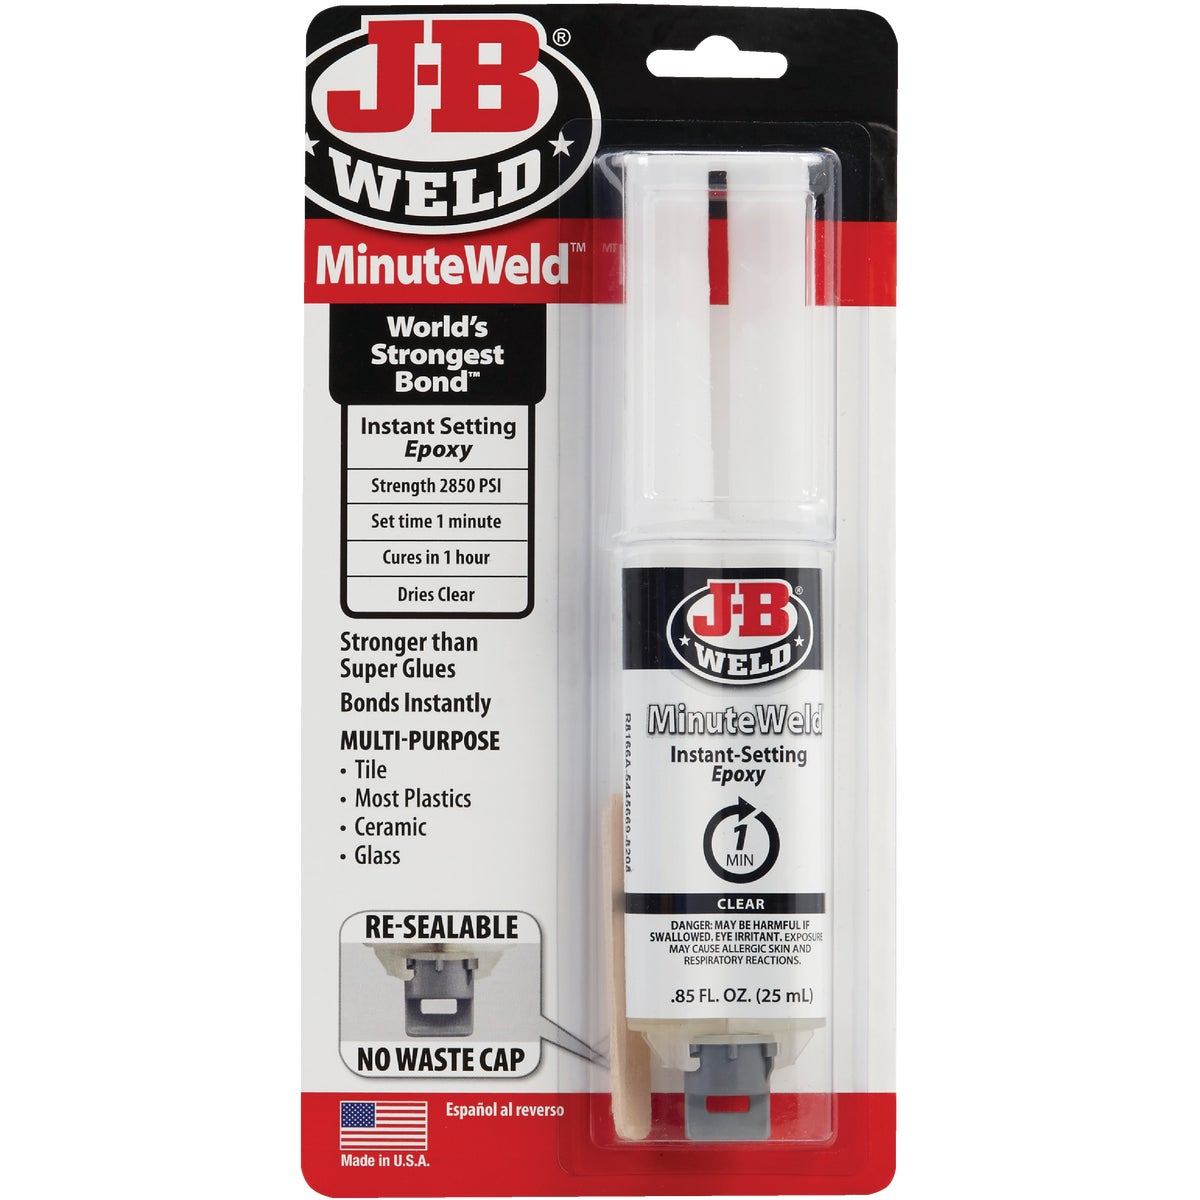 Item 331587, MinuteWeld is a specially formulated, high-strength, two-part instant setting epoxy. Will set under most temperature conditions in one minute.